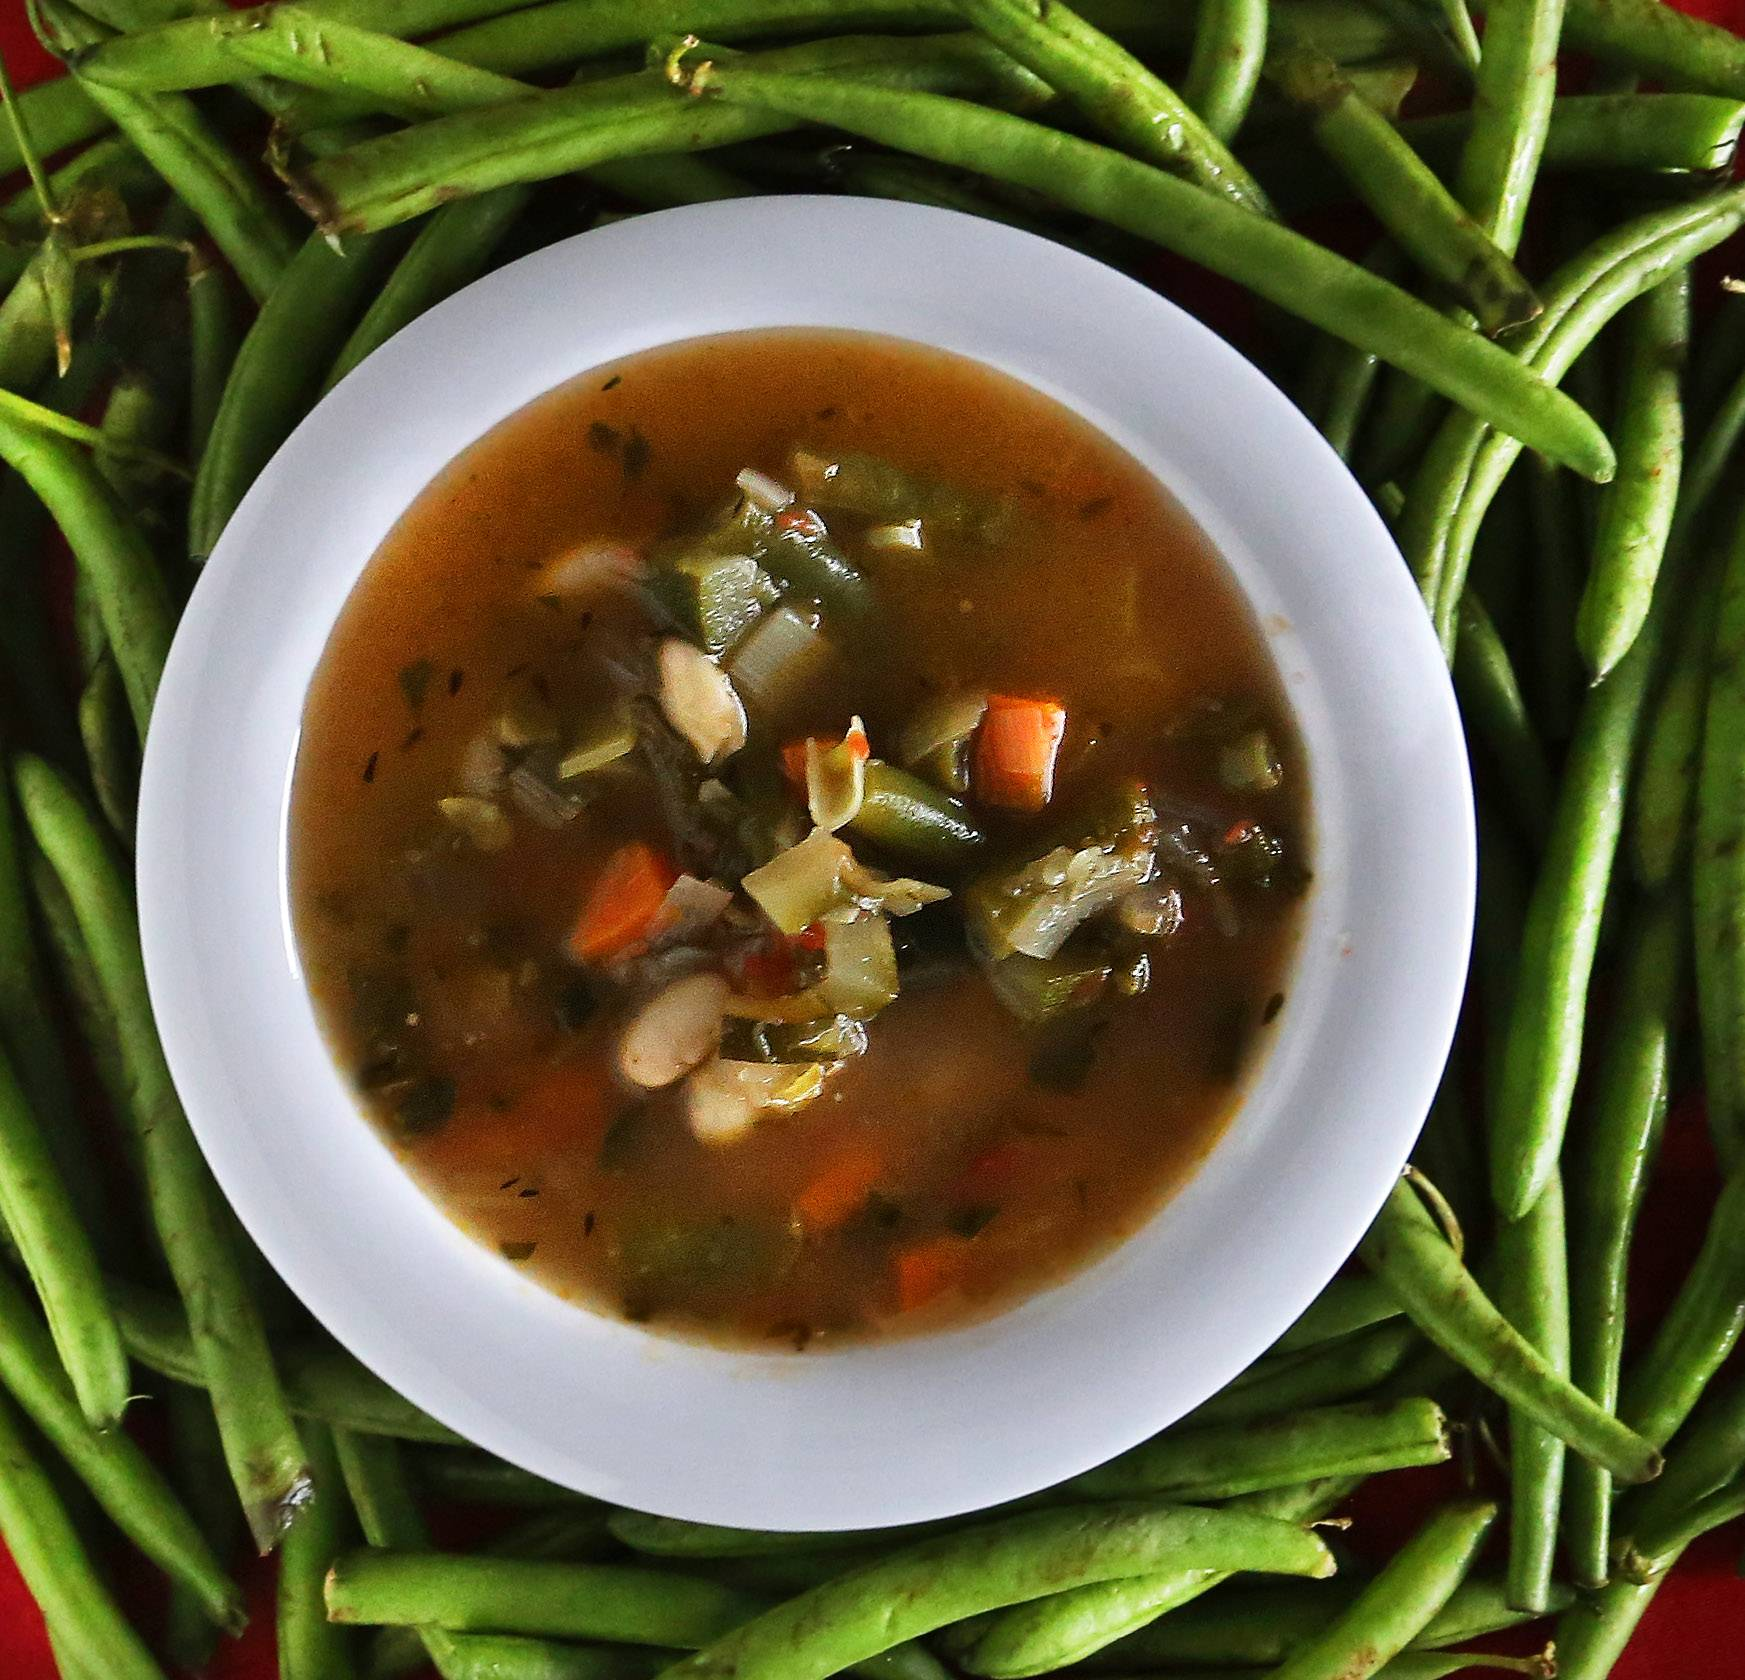 Soupalooza: Minestrone a melting pot for summer veggies